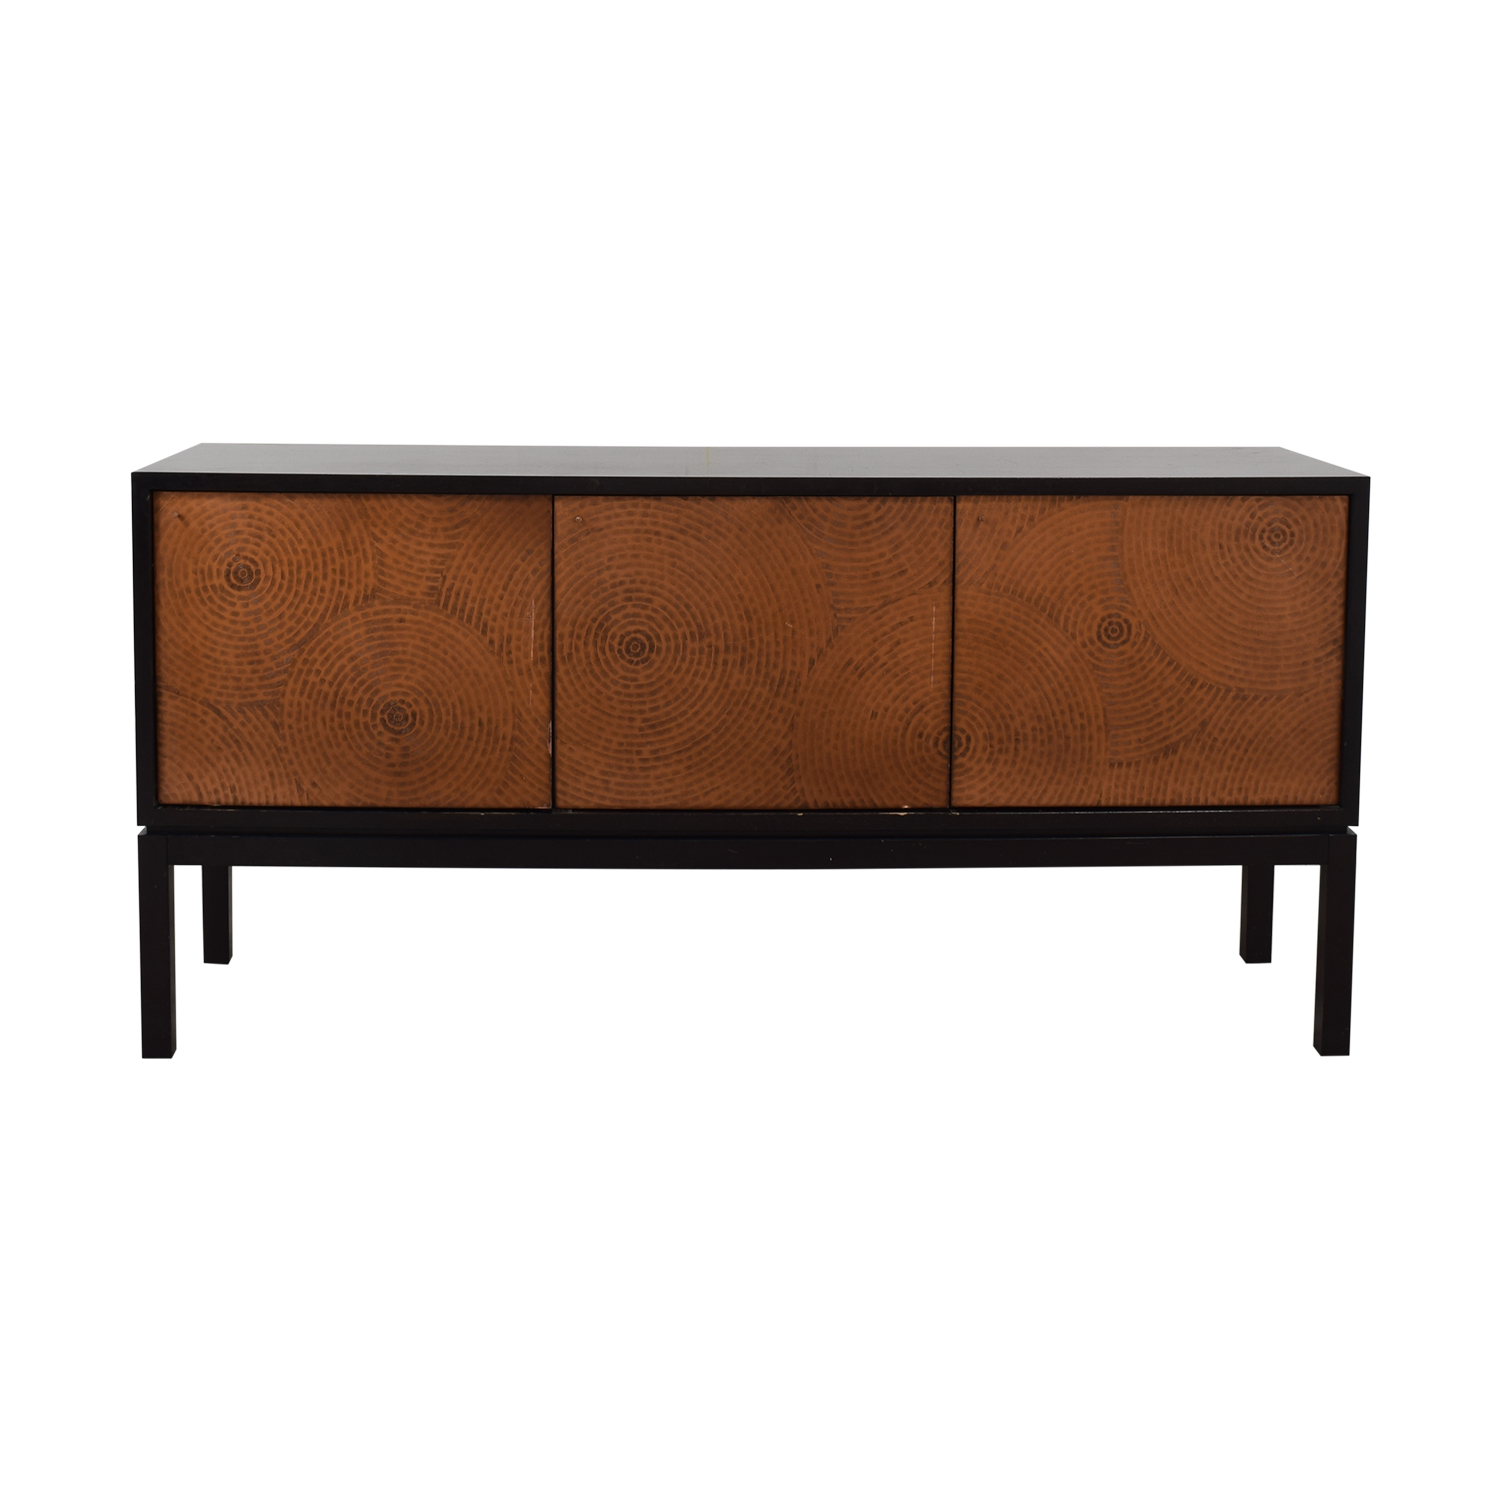 Crate & Barrel Crate & Barrel Cirque Three-Door Sideboard